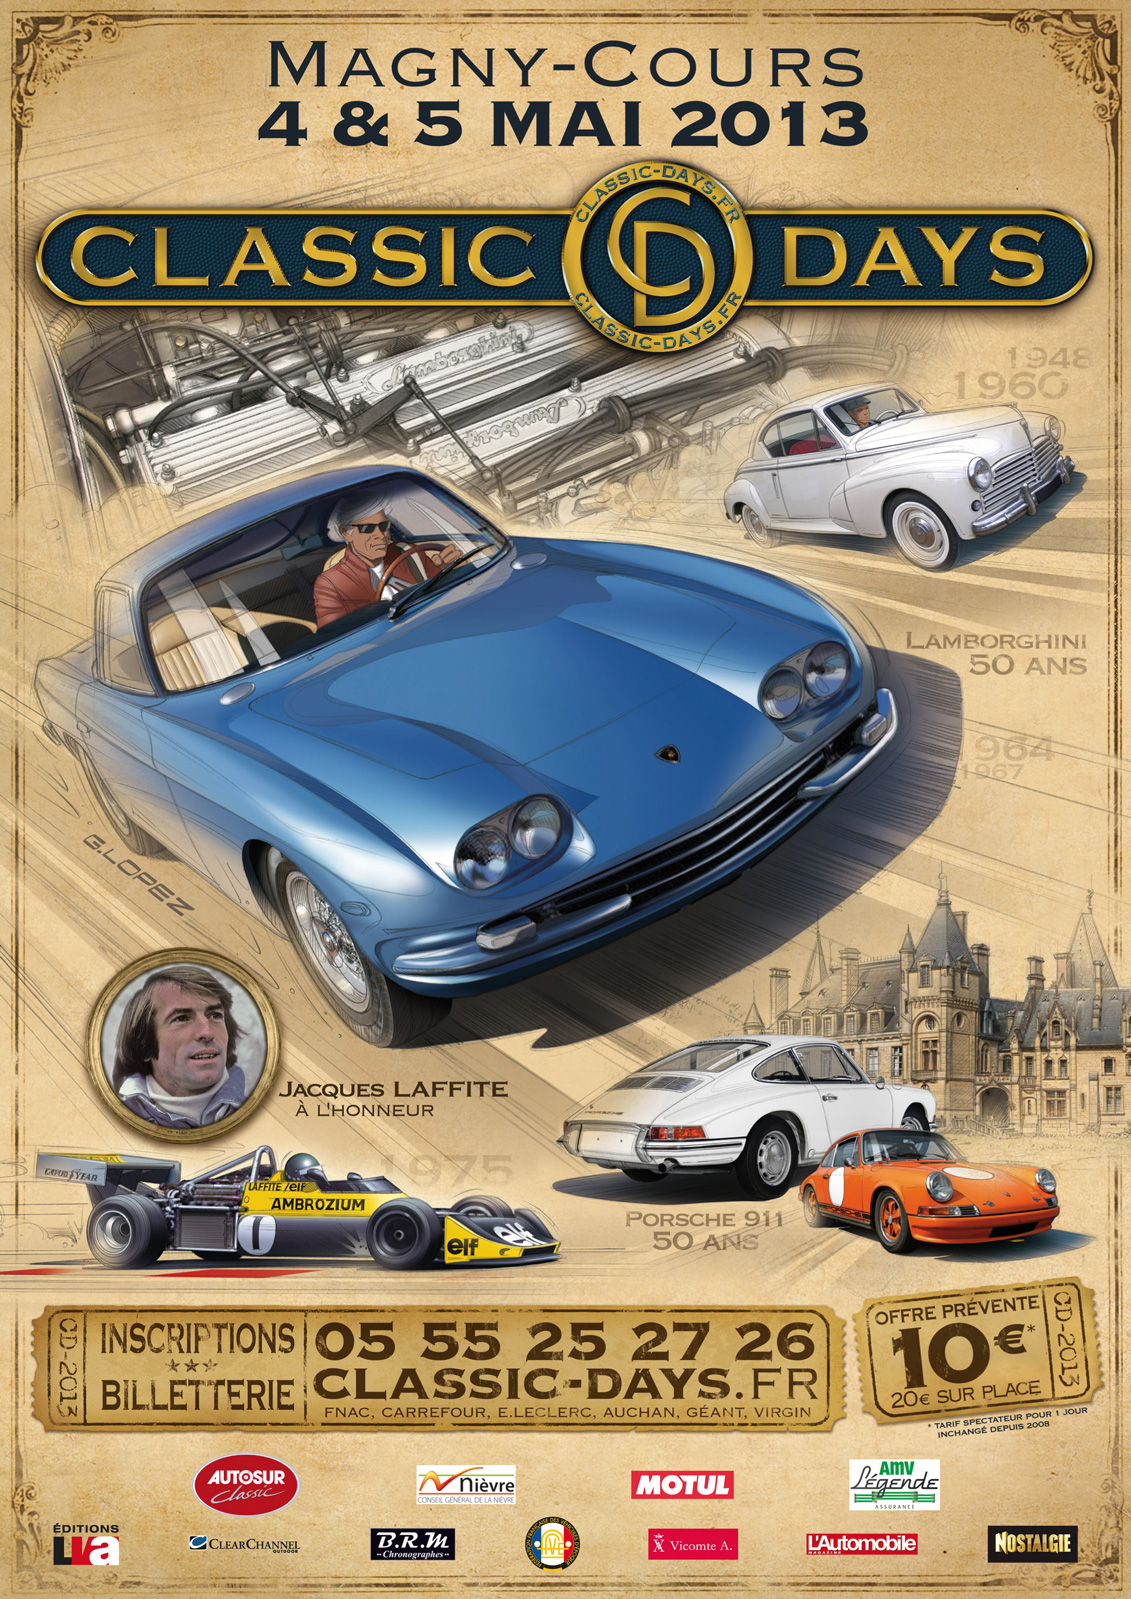 classic days magny cours 4 et 5 mai 2013 grand prix de tours. Black Bedroom Furniture Sets. Home Design Ideas